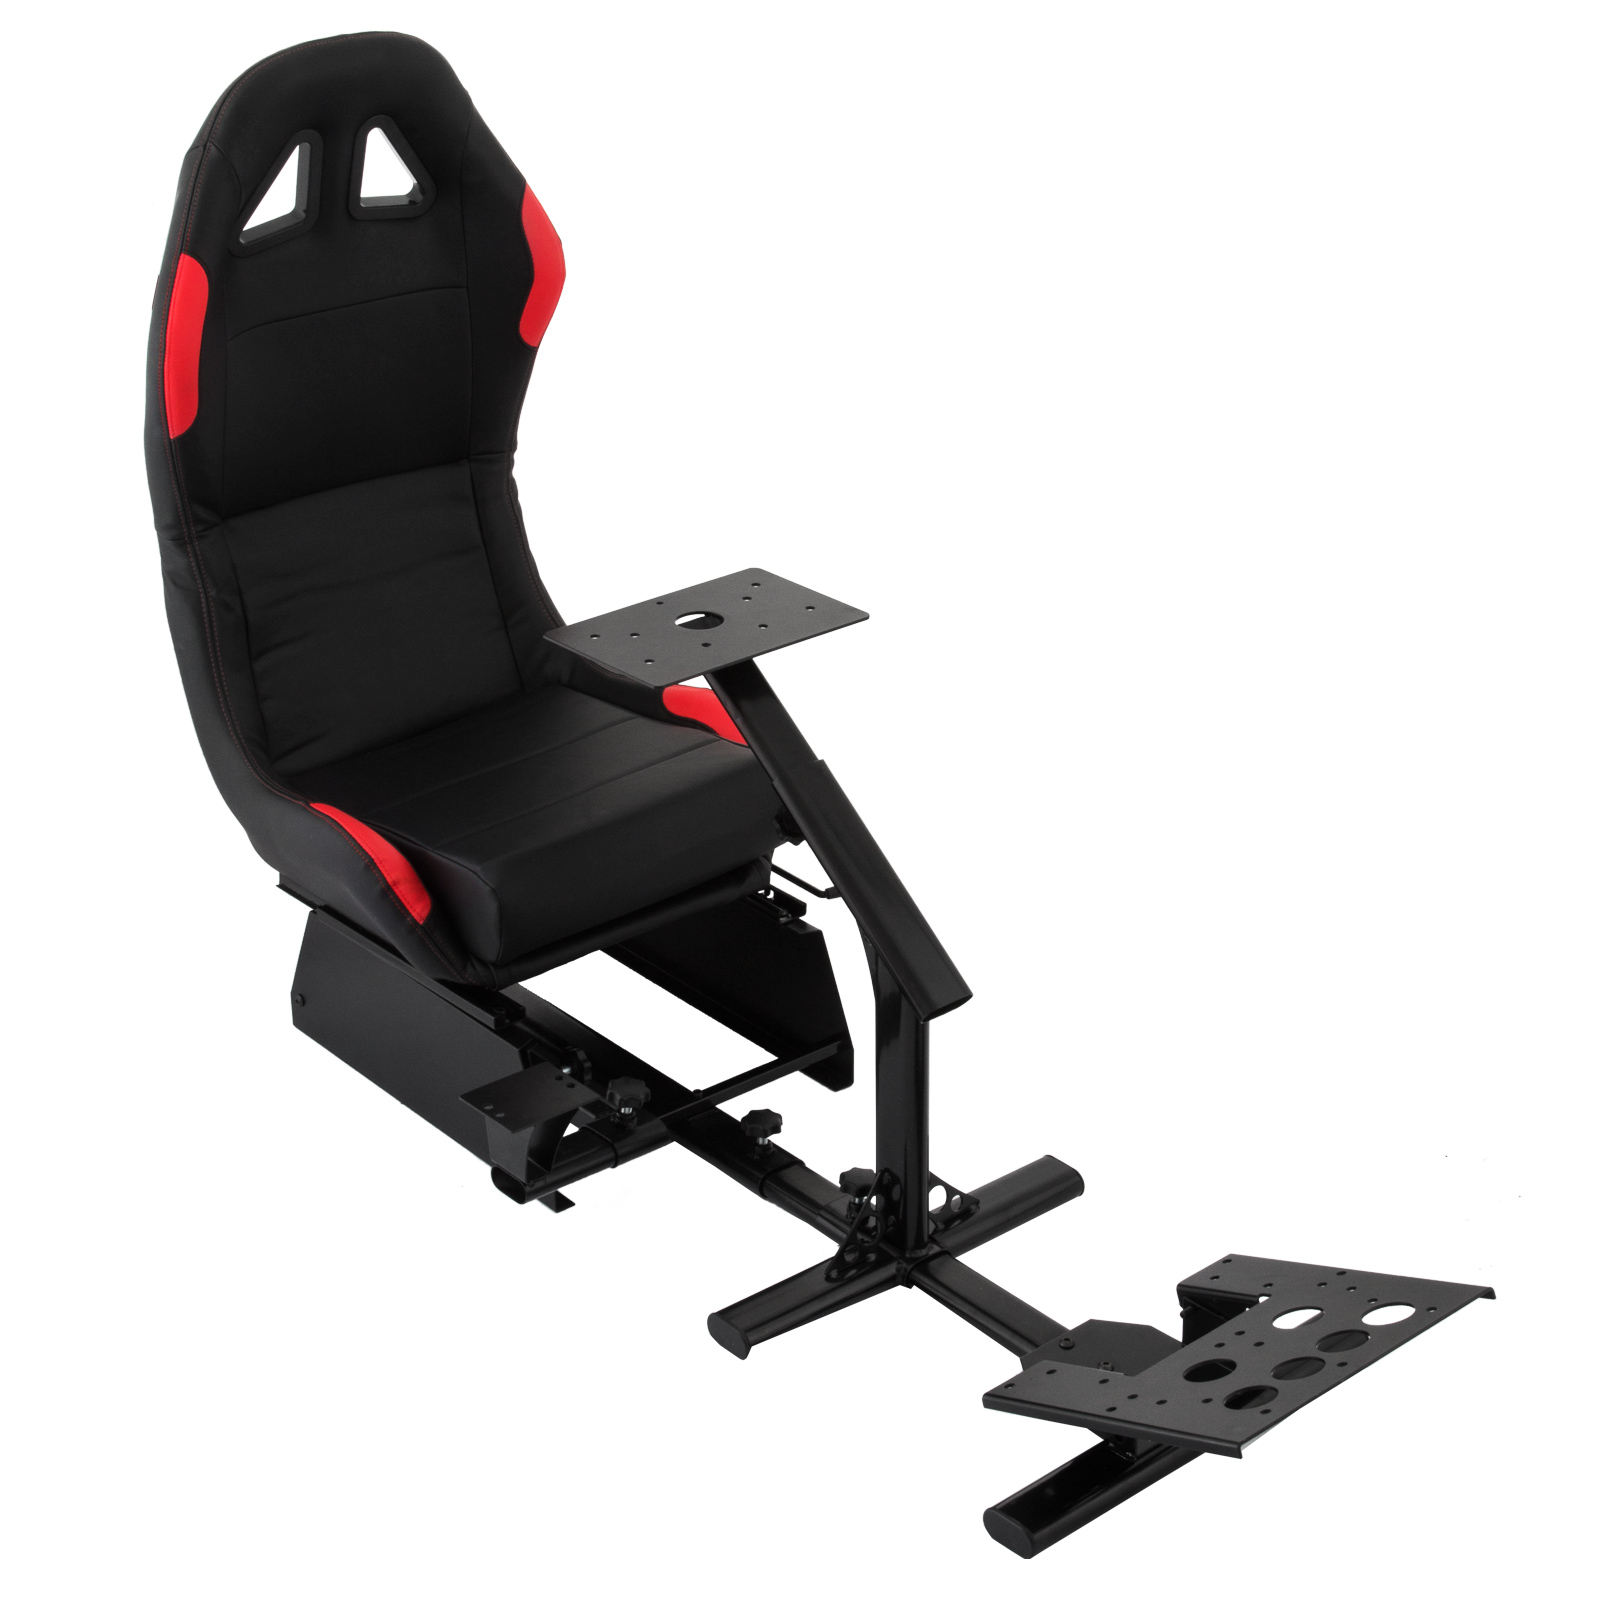 VEVOR Driving Simulator Gaming Chair Adjustable and Foldable Racing Cockpit Seat with Gear Shifter Mount for PS2 PS3 PS4 Xbox Xbox360 Xbox One